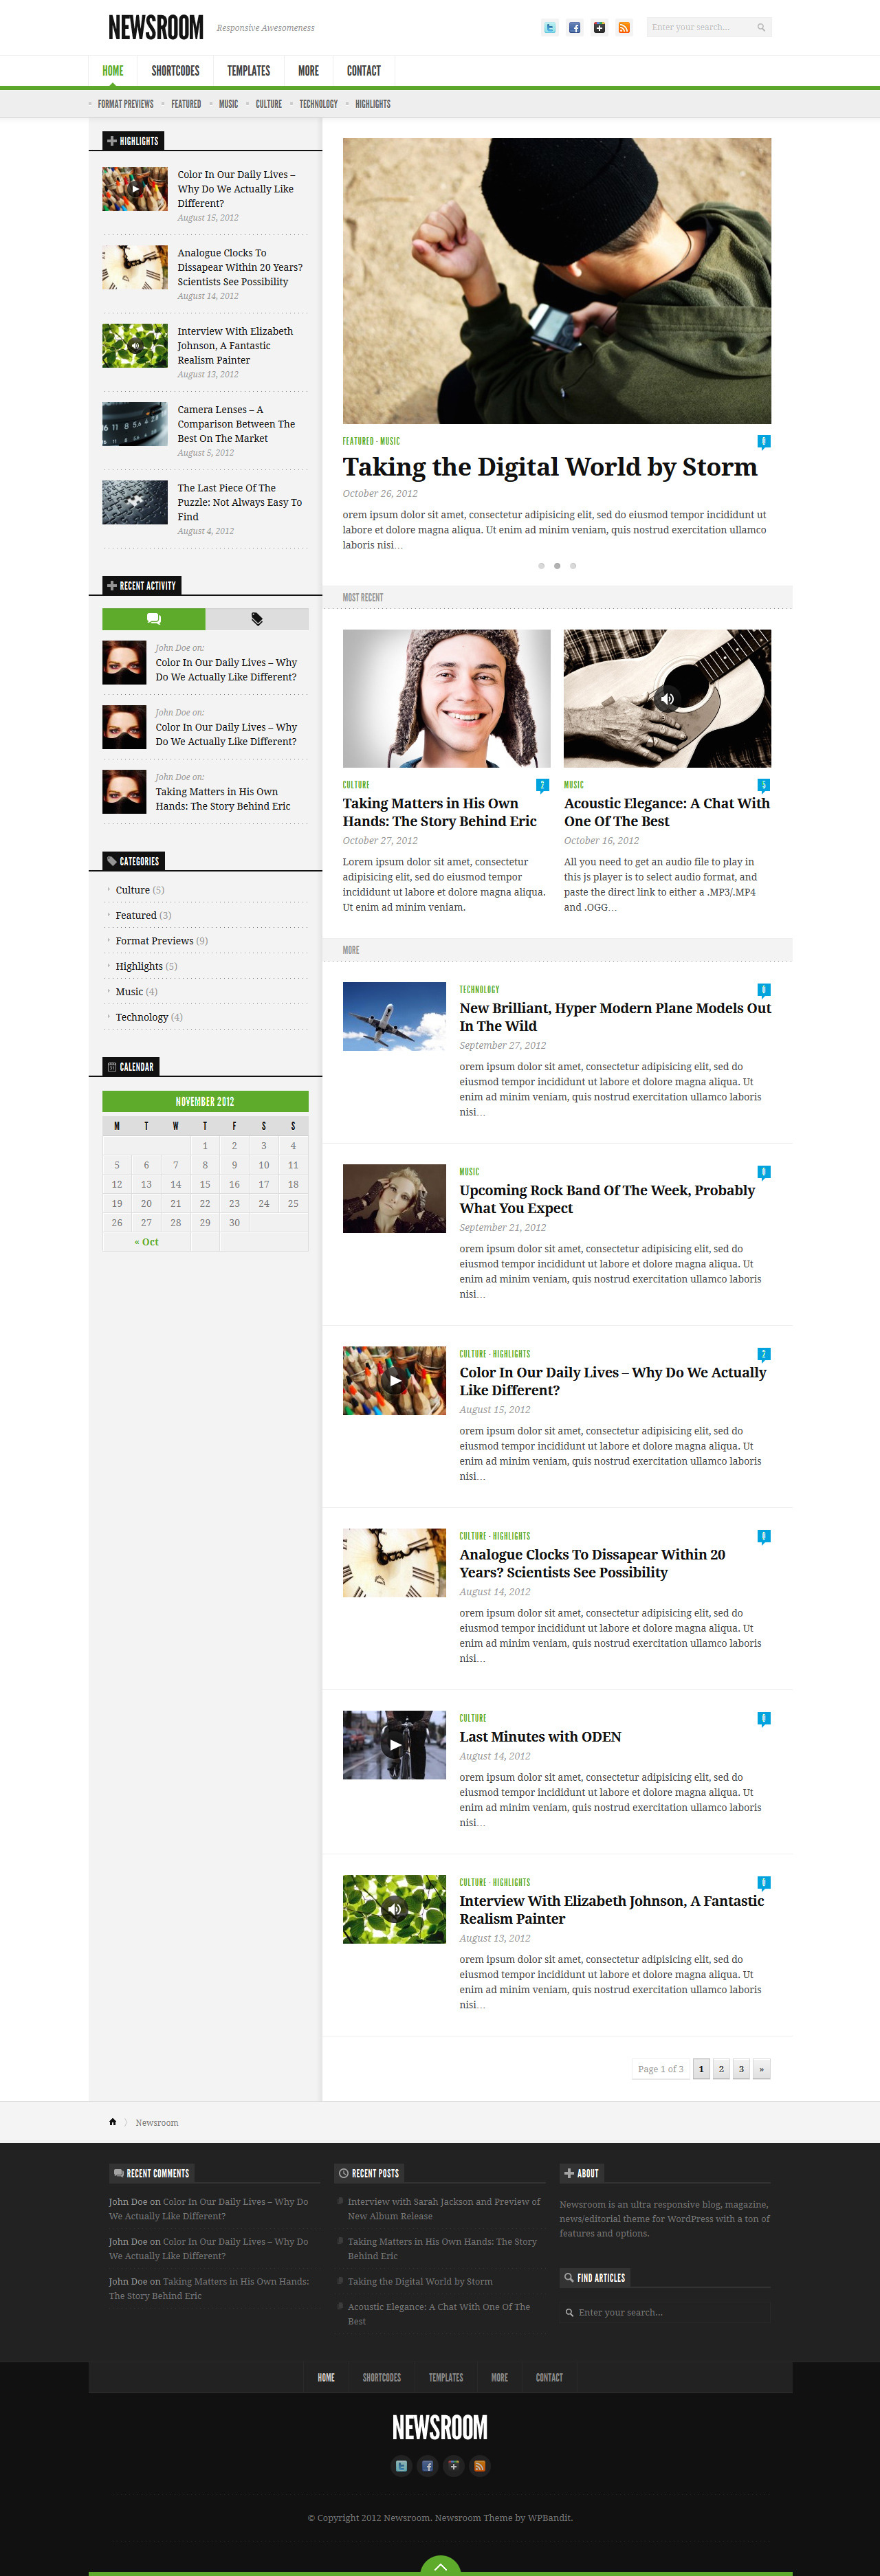 Newsroom - Responsive News &amp; Magazine Theme